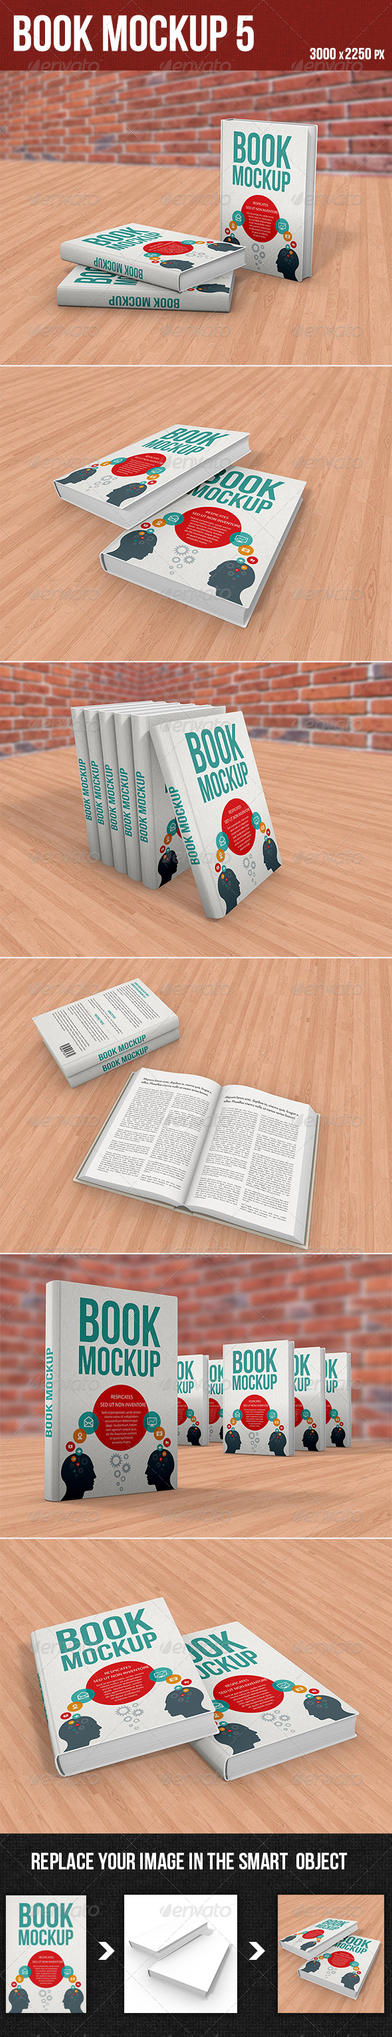 Book Mockup5 by graphickey